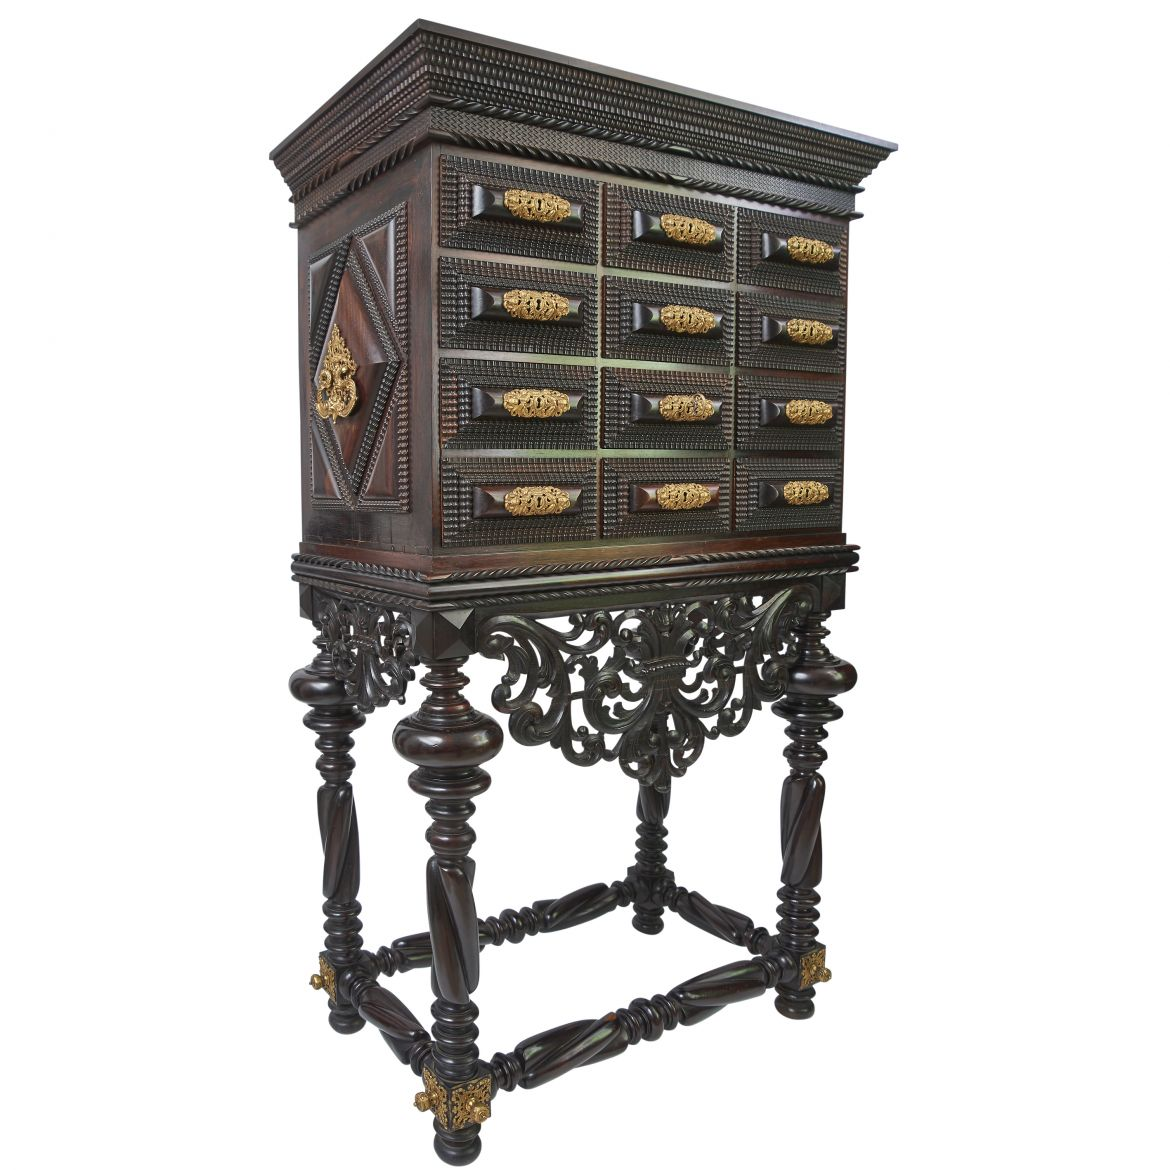 Indo Portugese Ripple Moulded Ebony And Rosewood Collector's Cabinet On Stand